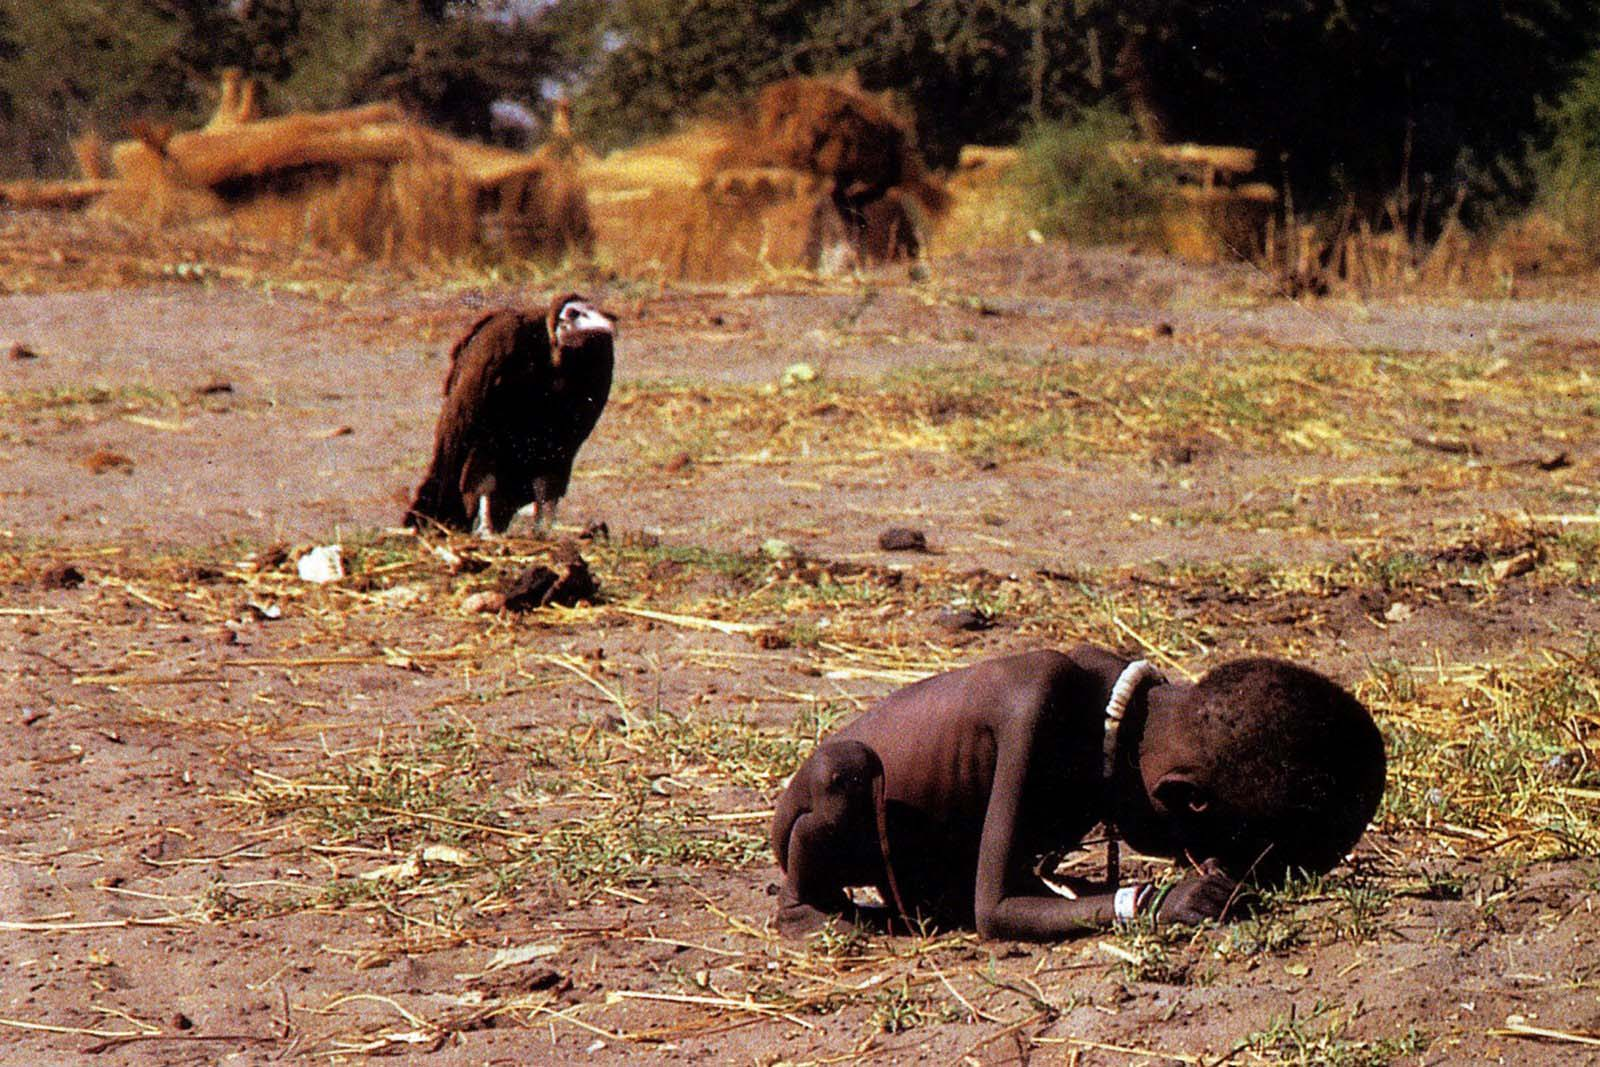 The vulture and the little girl, 1993. Original title: Struggling Girl.